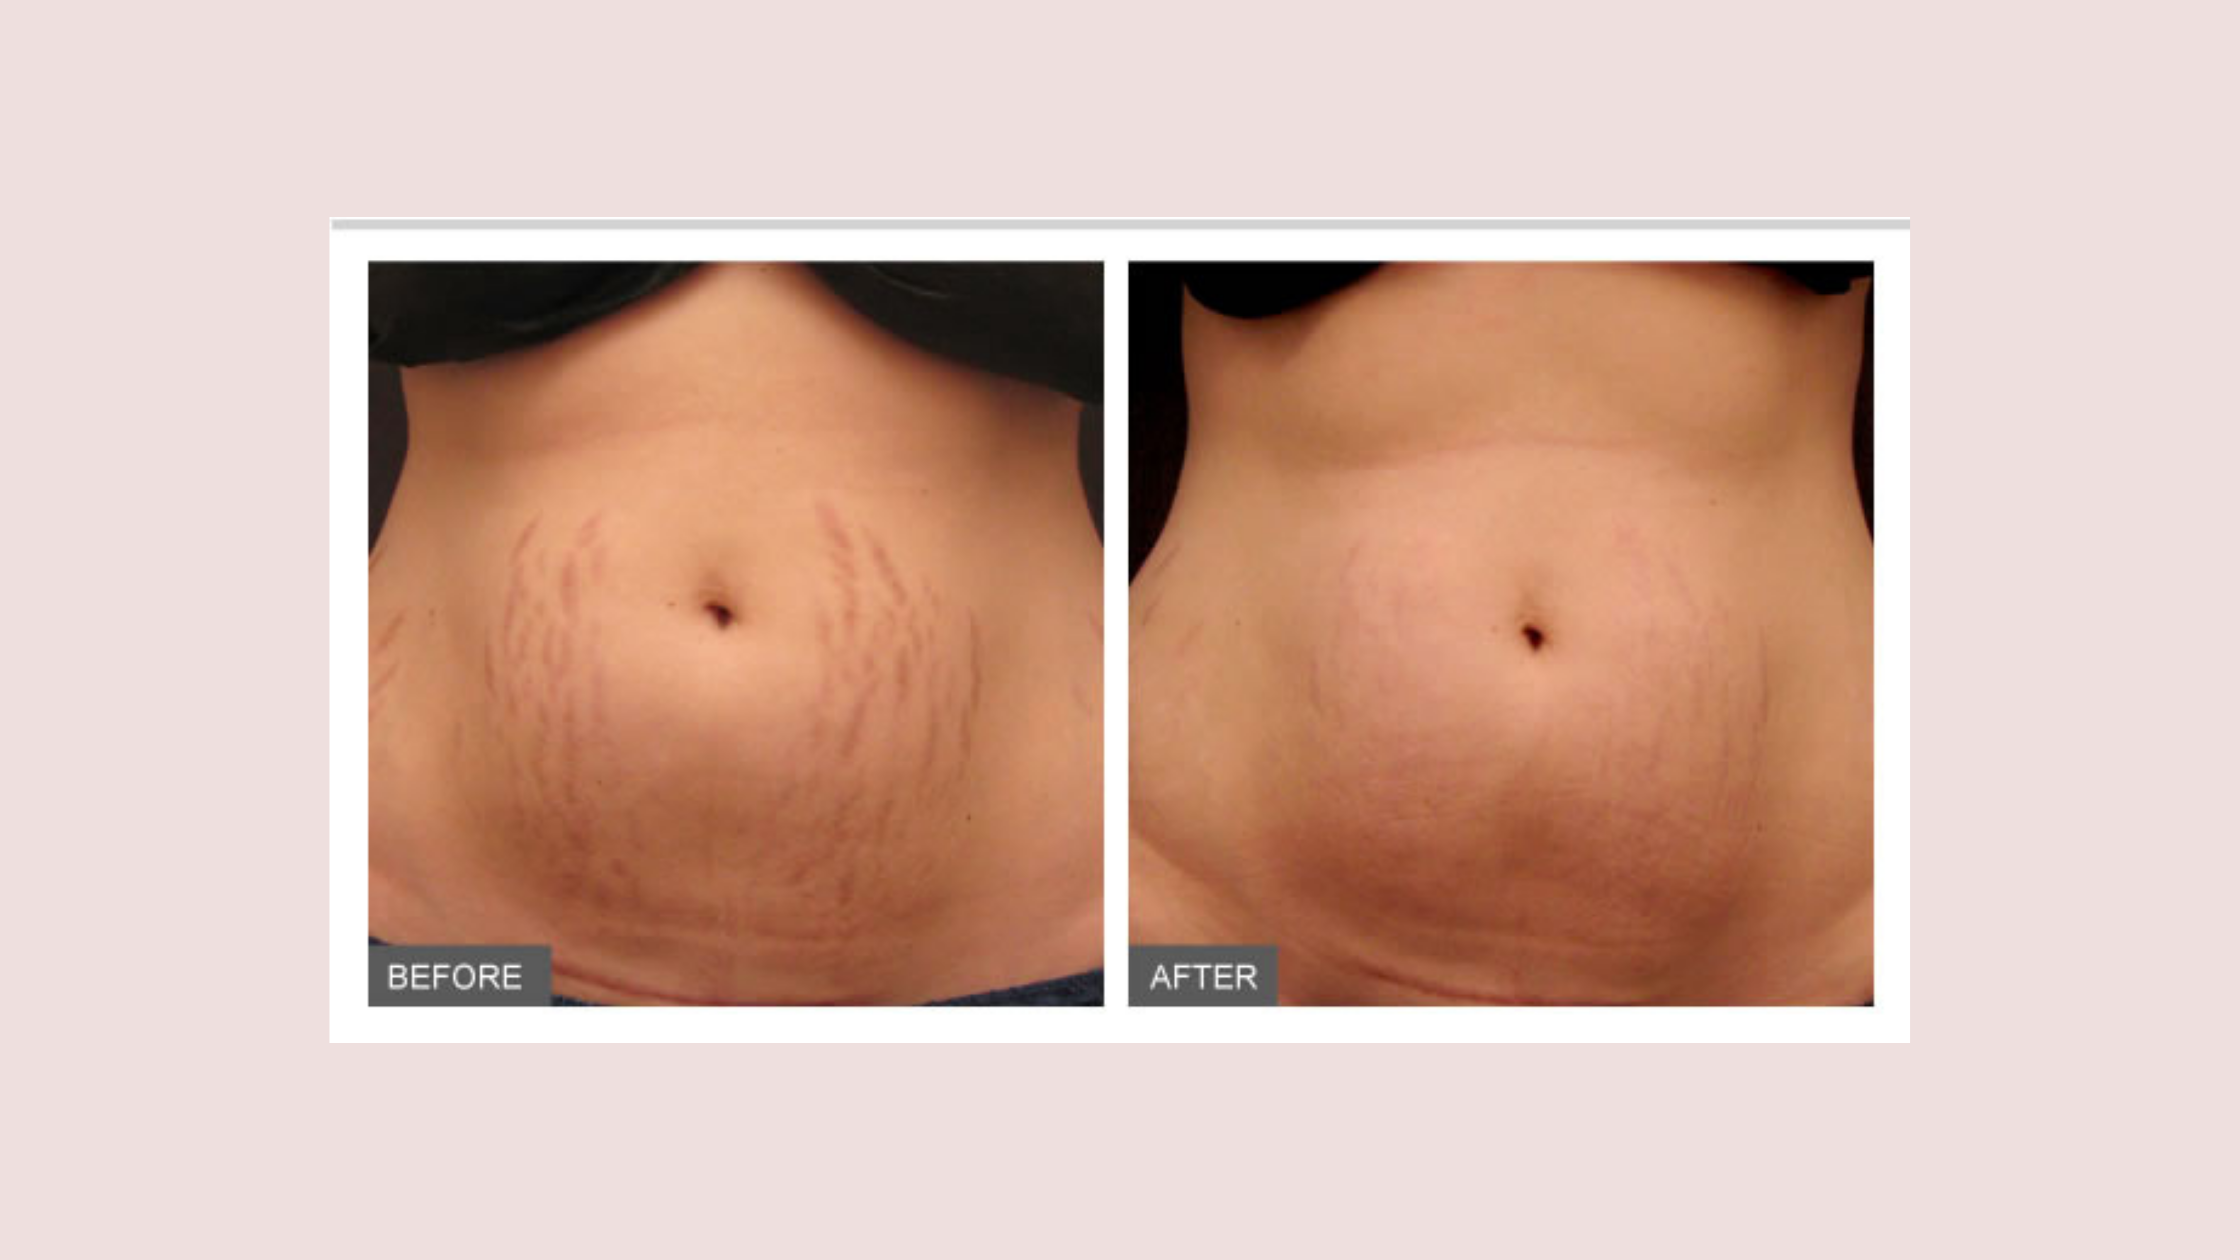 Stretch Marks before and after RF Microneedling